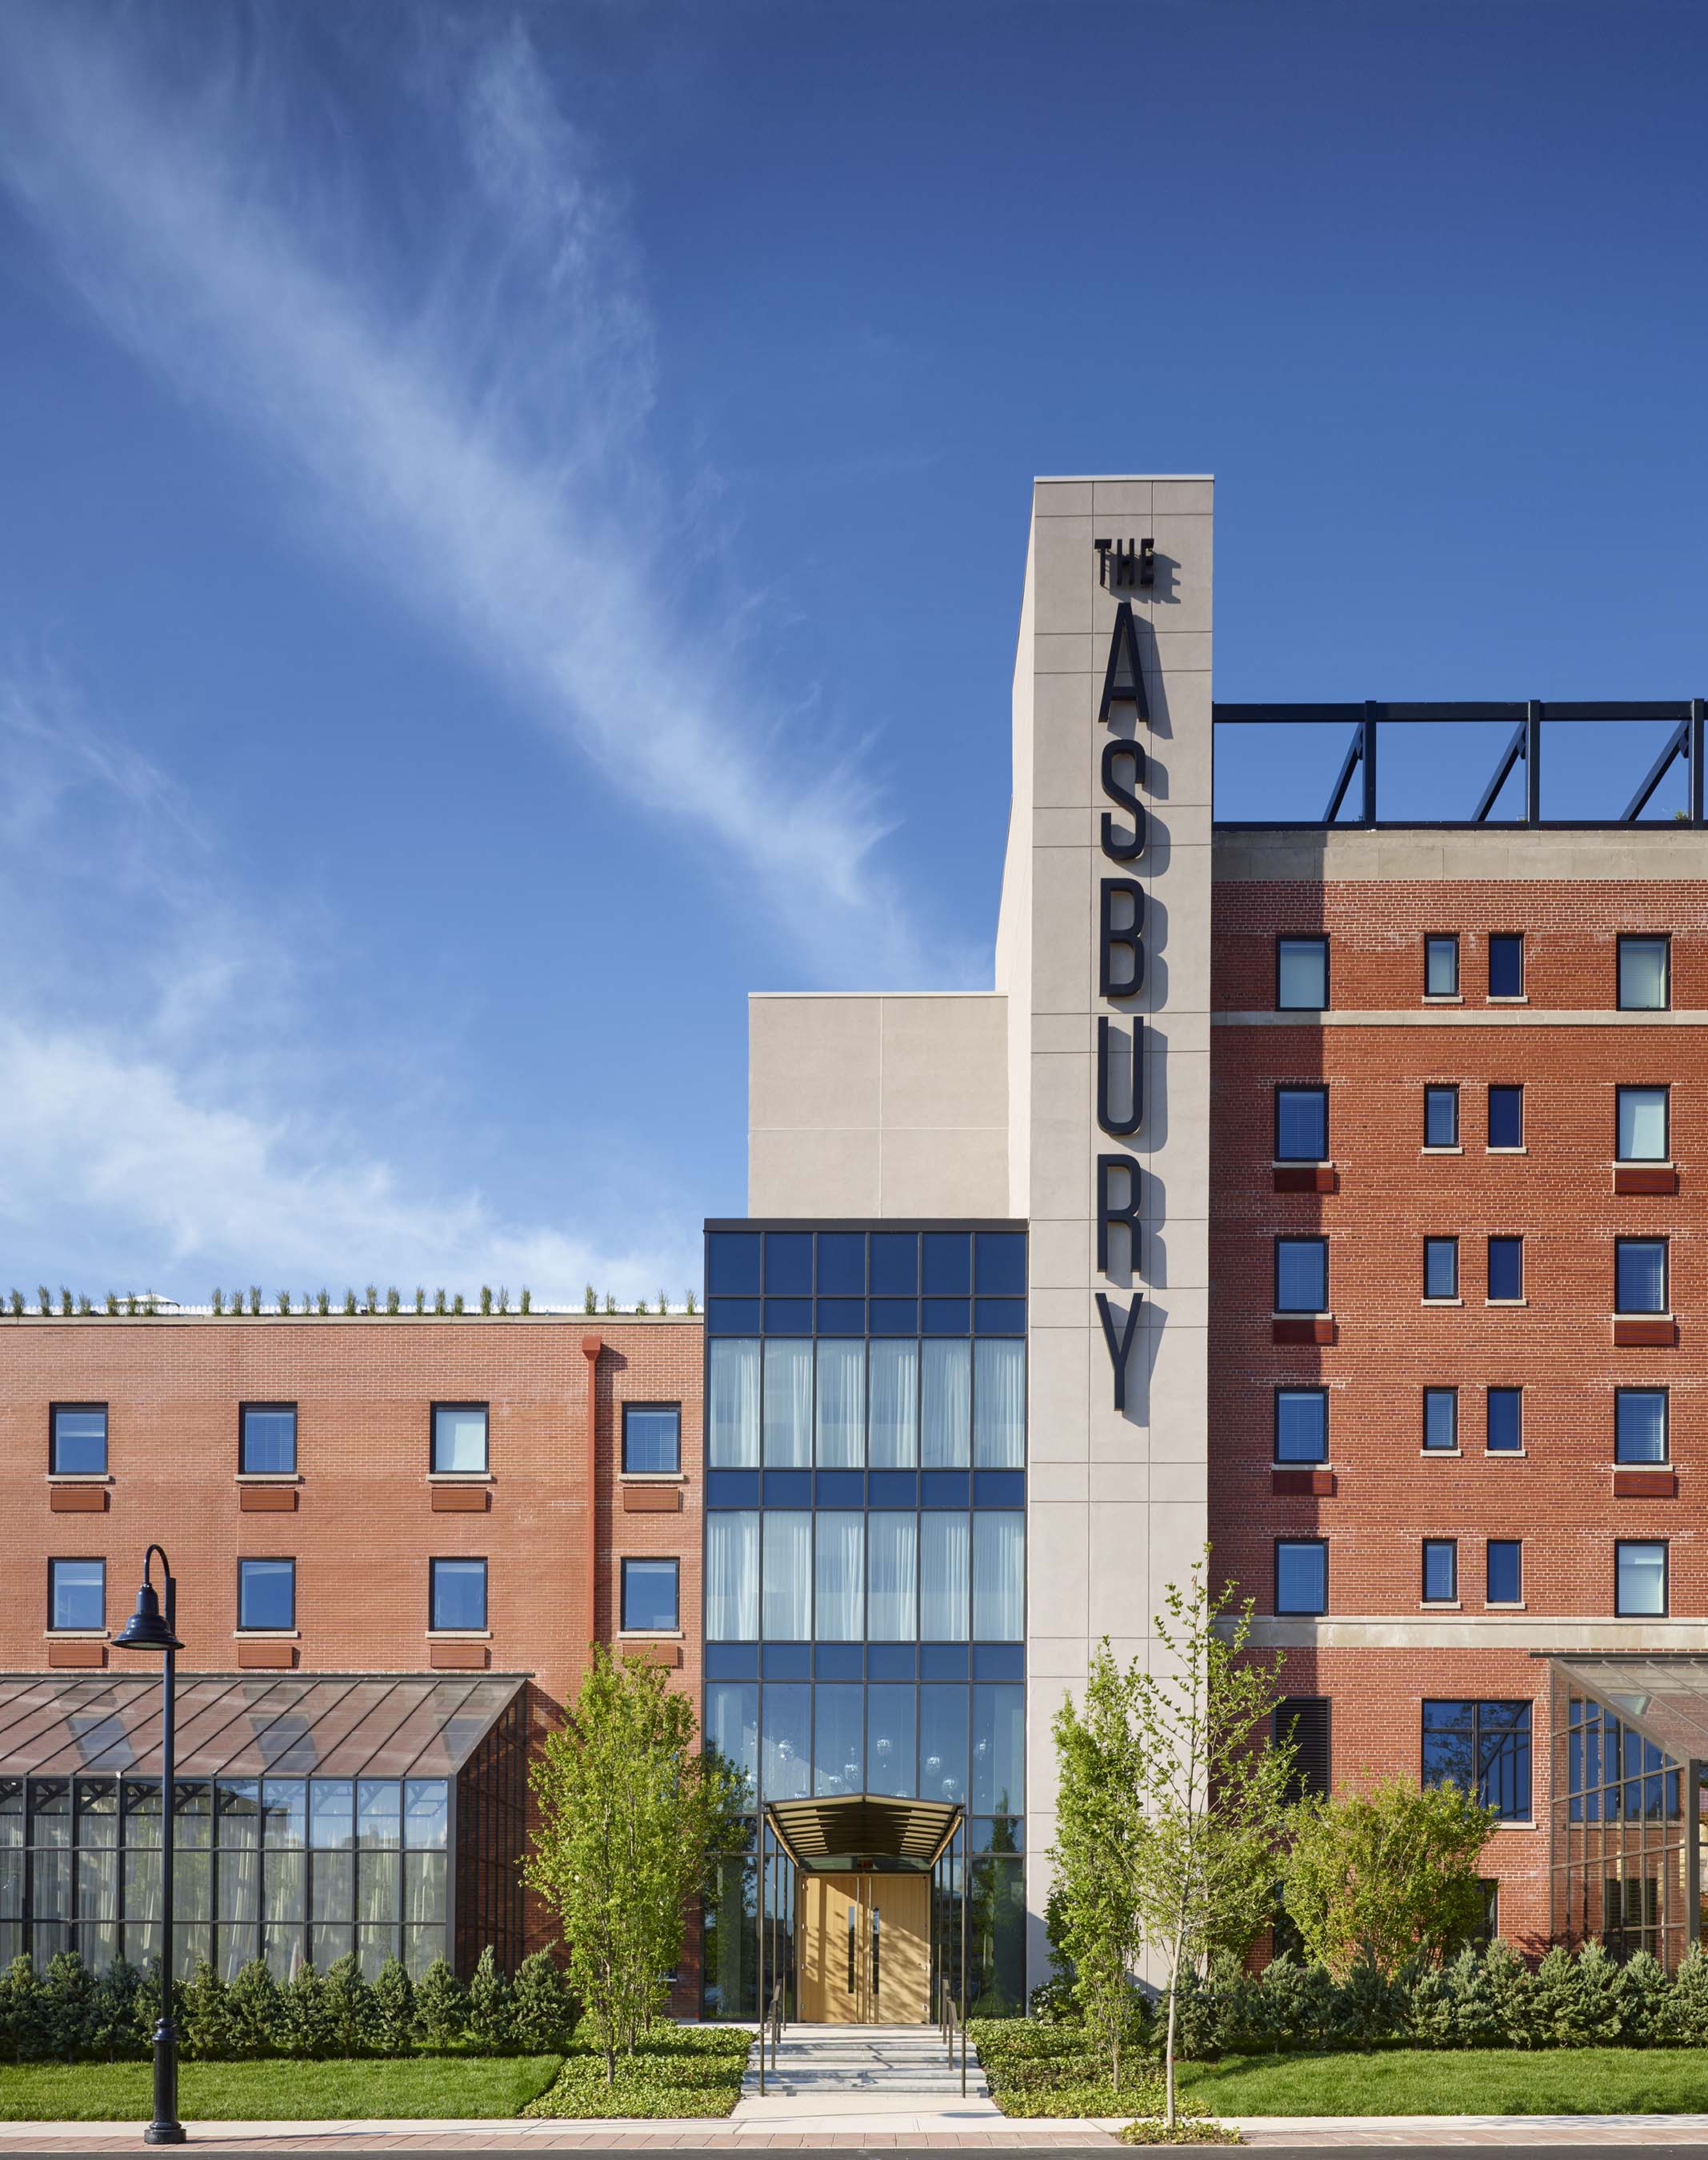 The Asbury Hotel, just named best new hotel in America by USA Today